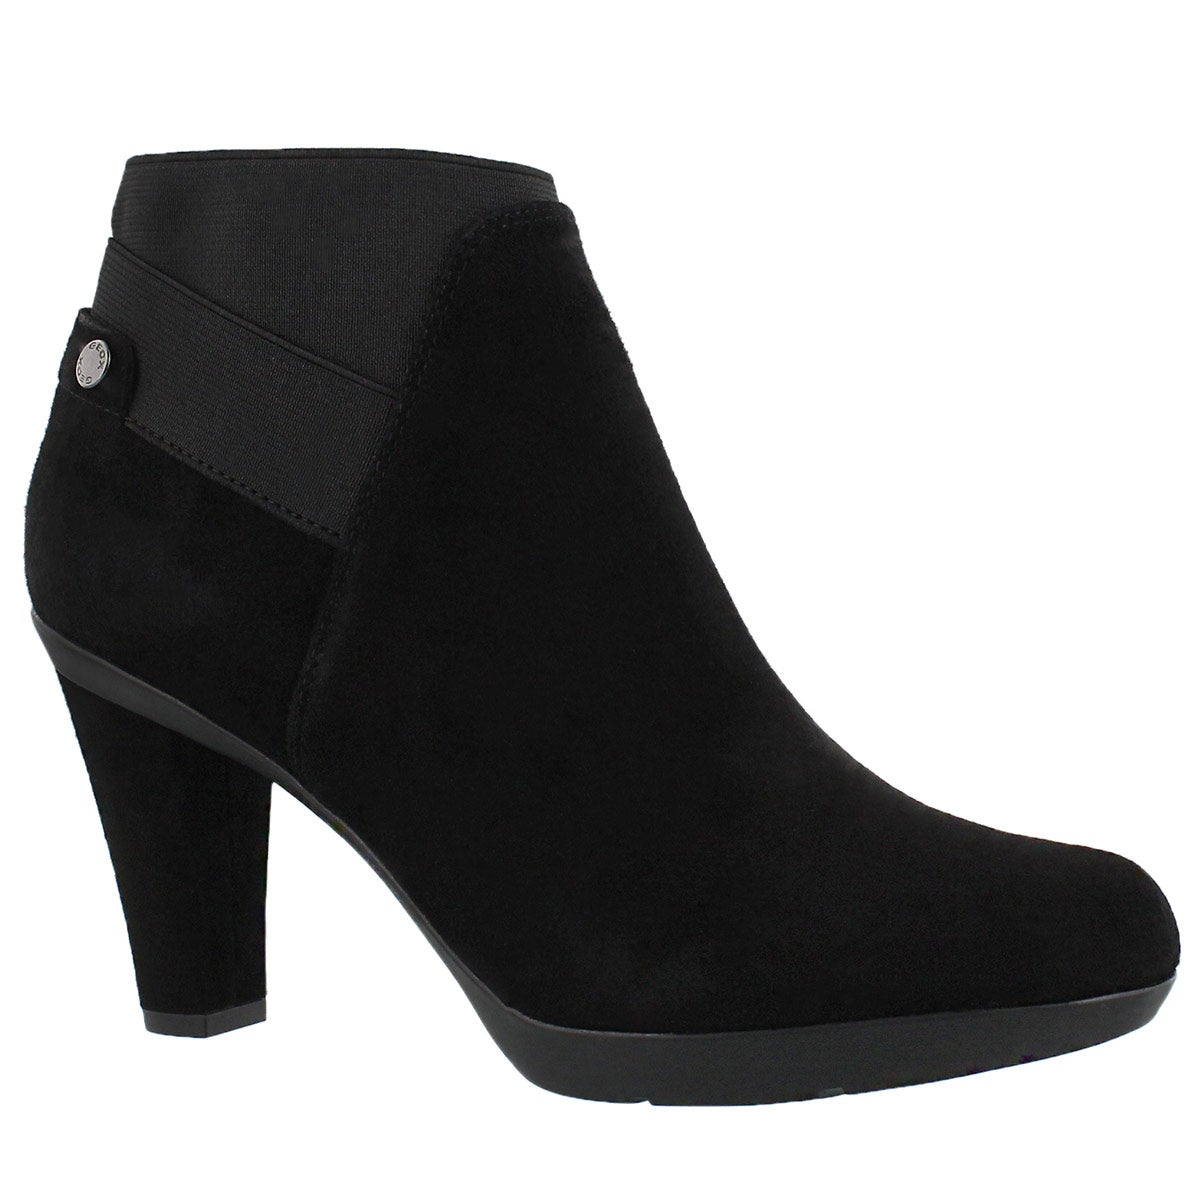 Women's INSPIRATION STIV black suede ankle boots